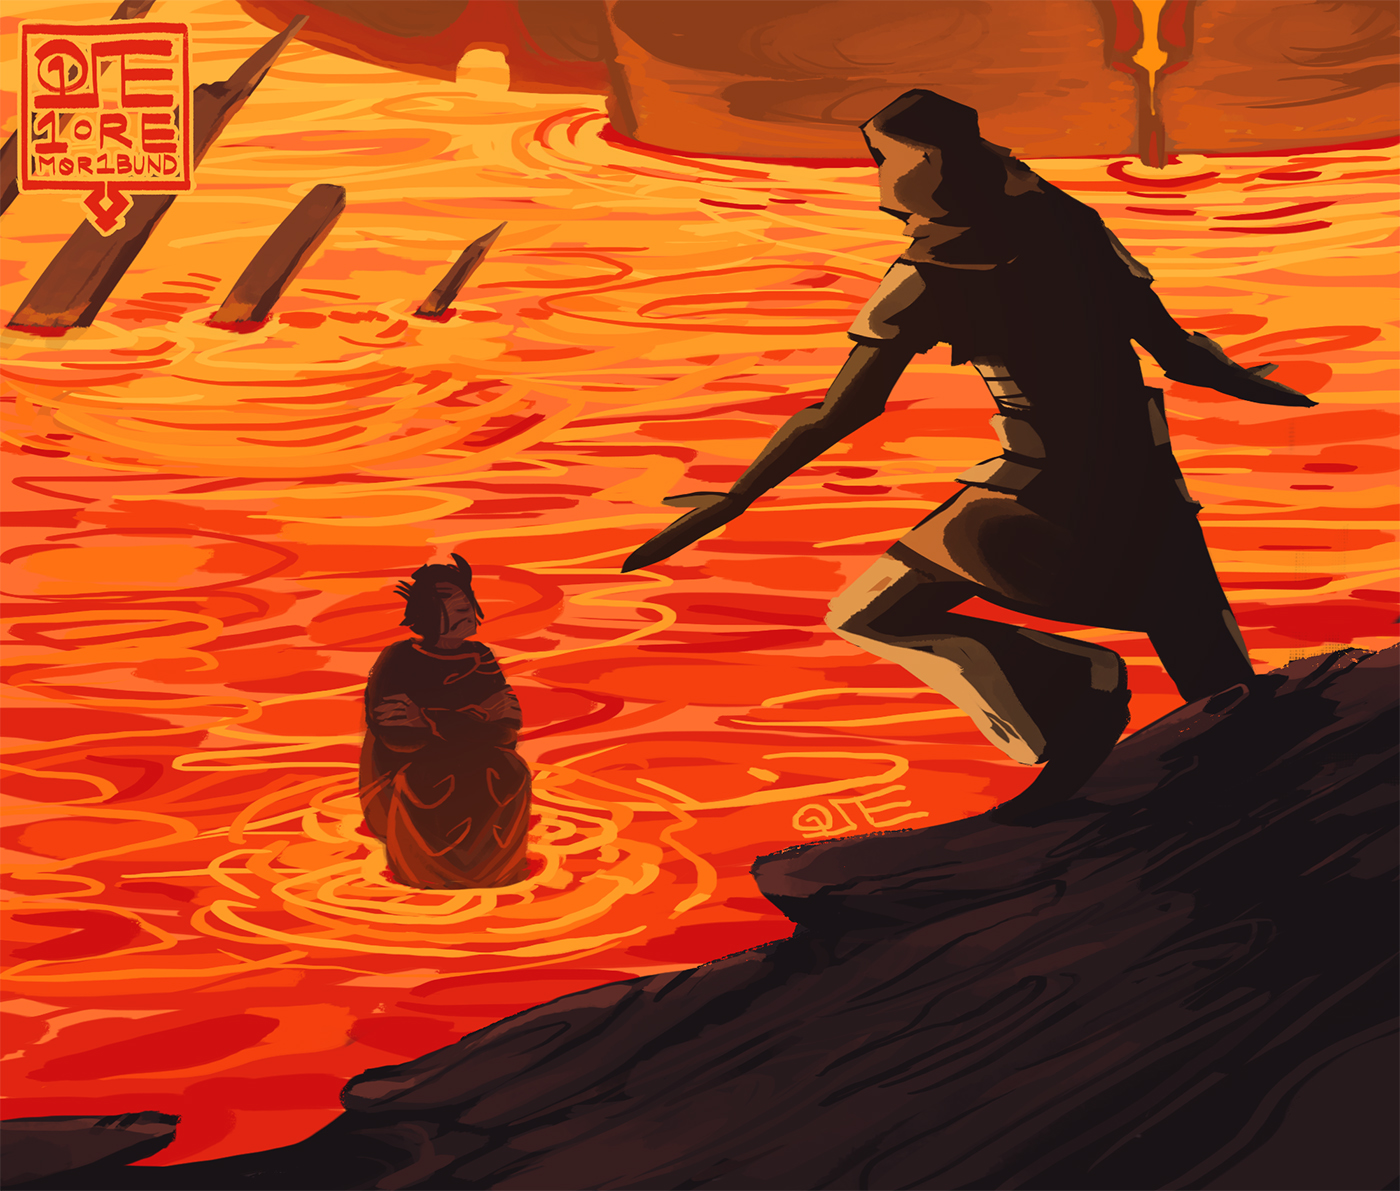 Samalkan sits with his arms crossed in the lava seas of the Deadlands, to thwart a questing adventurer.